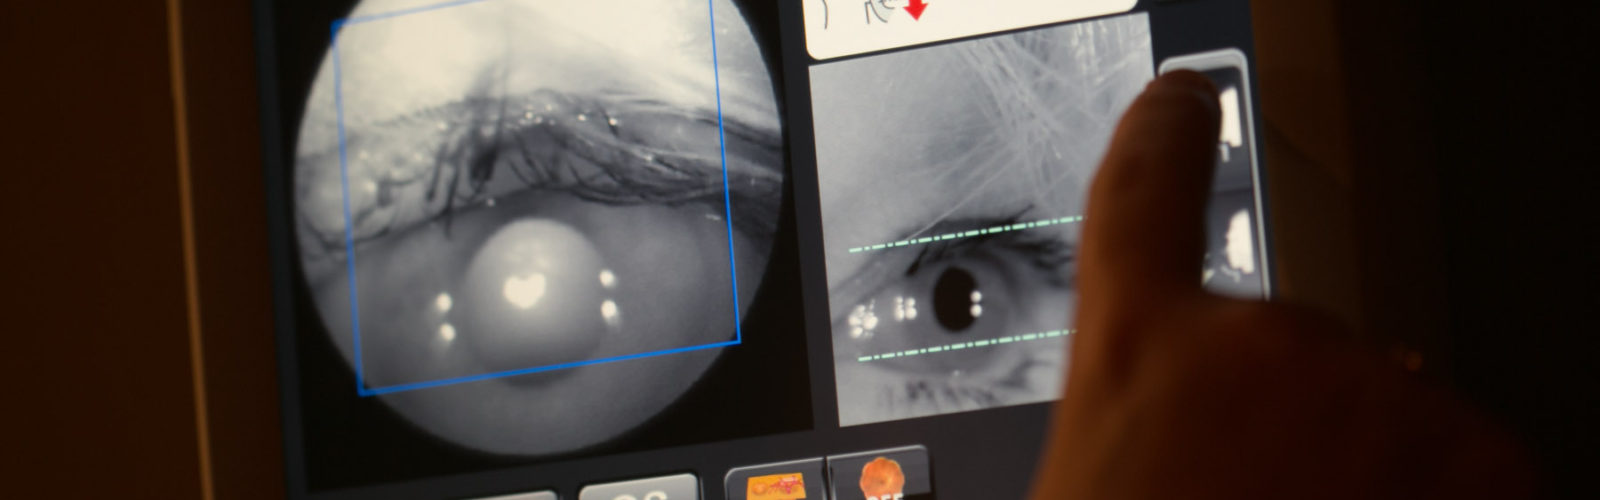 Picture of eye being taken by camera in clinic